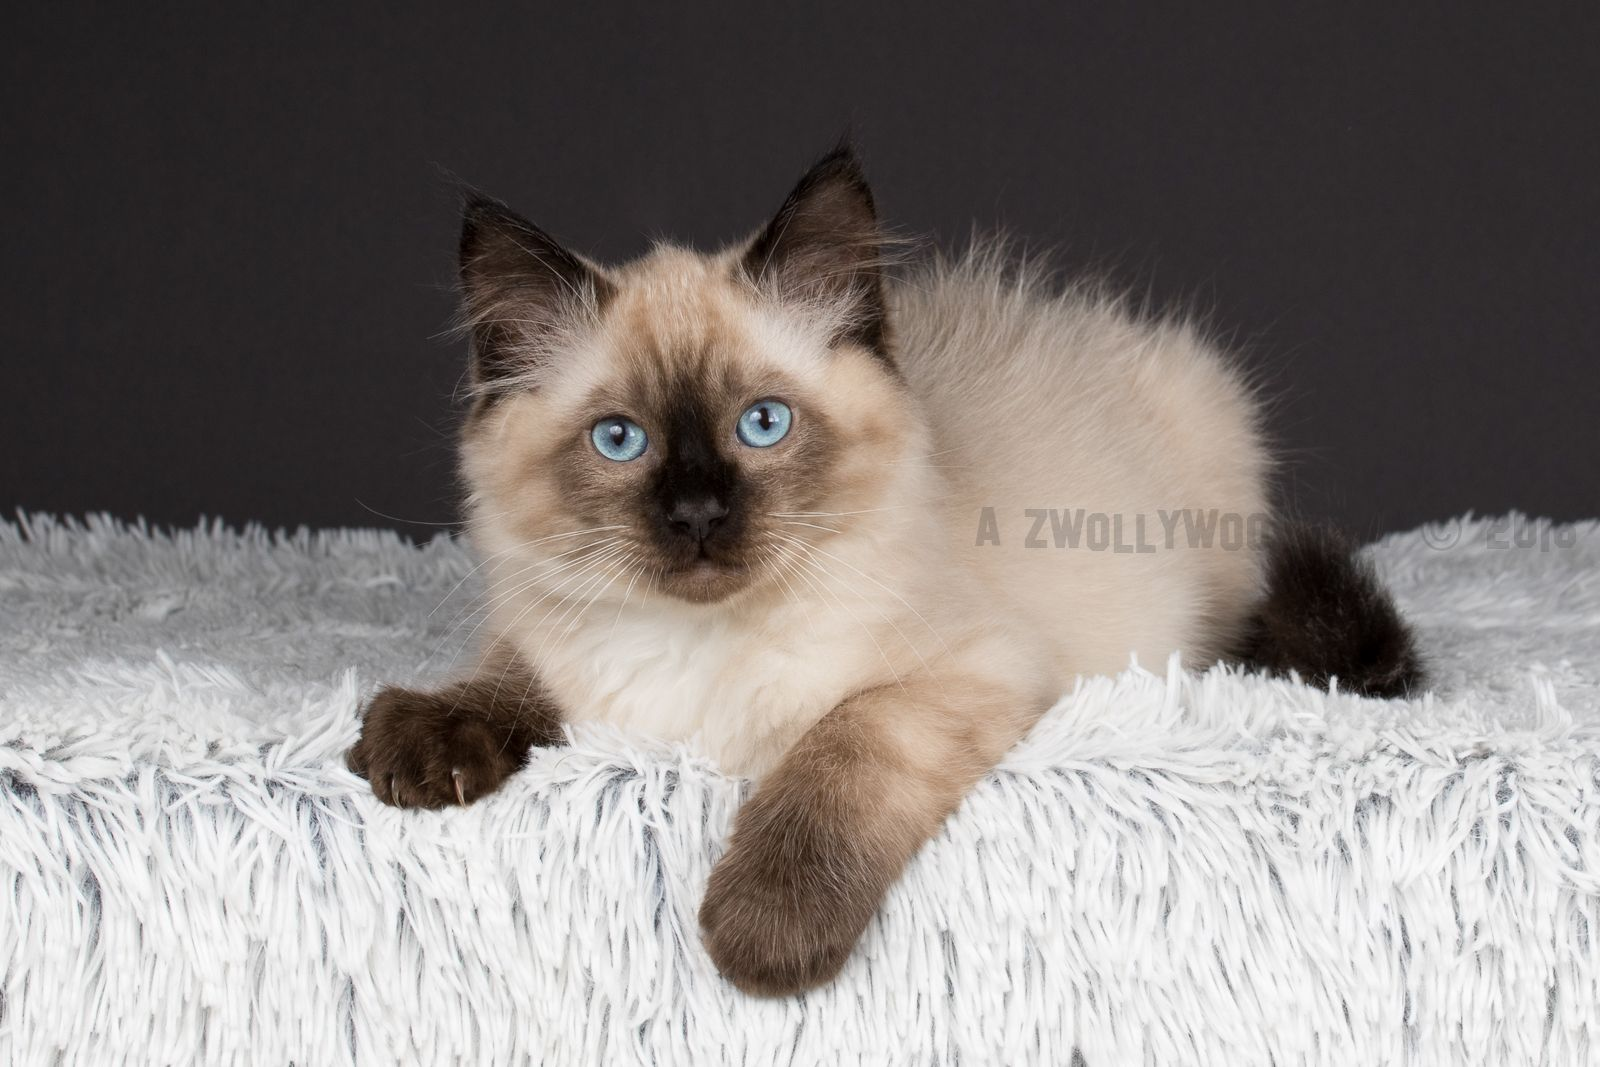 2016 Dino A Zwollywood Cat 12 Weeks Old Ragdoll Kitten Seal Colourpoint From The Flintstones Litter